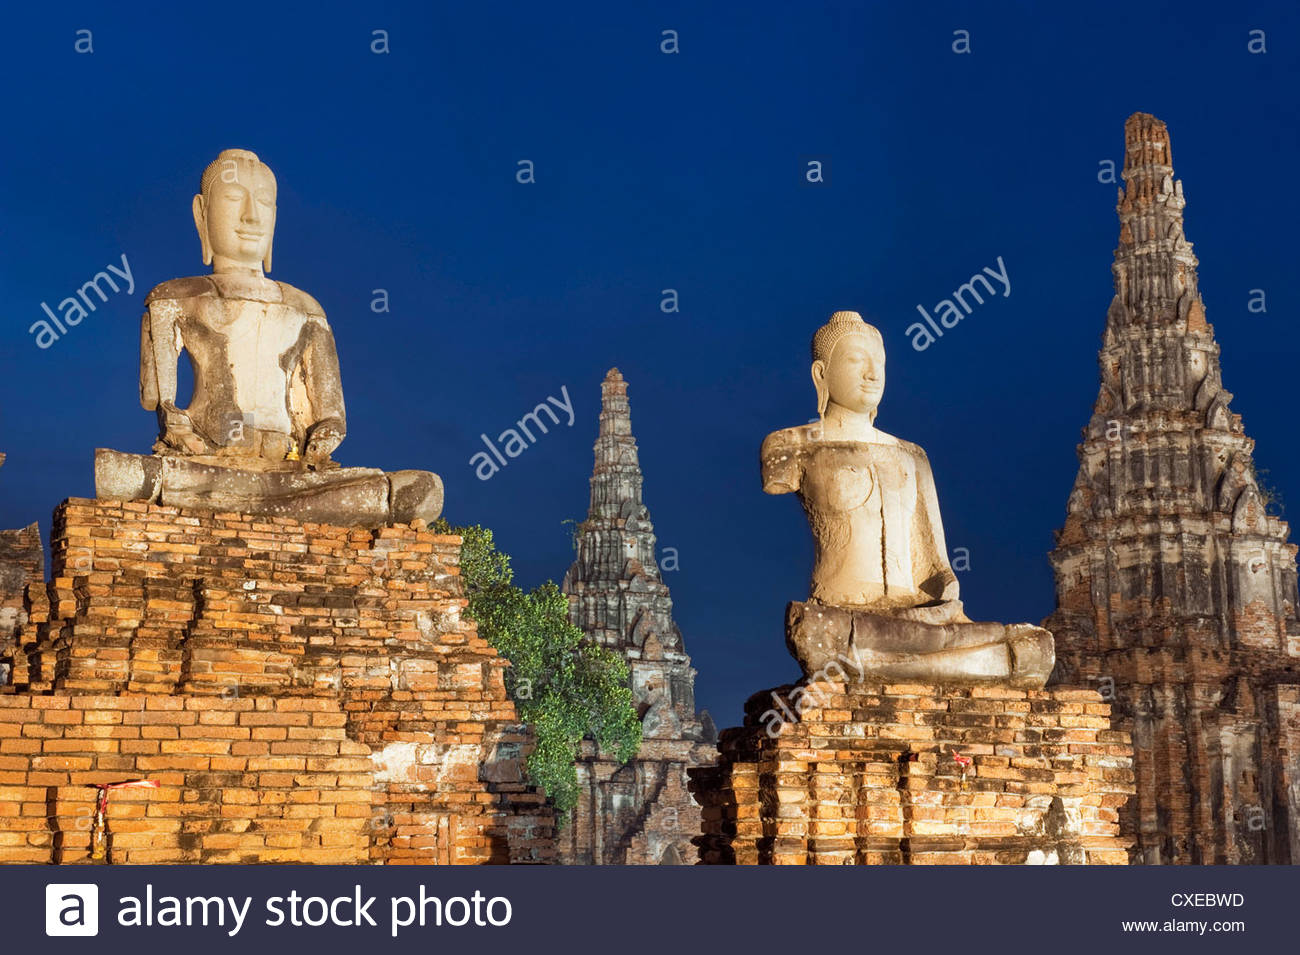 Old Buddhist statues, Ayutthaya, UNESCO World Heritage Site, Thailand, Southeast Asia, Asia - Stock Image